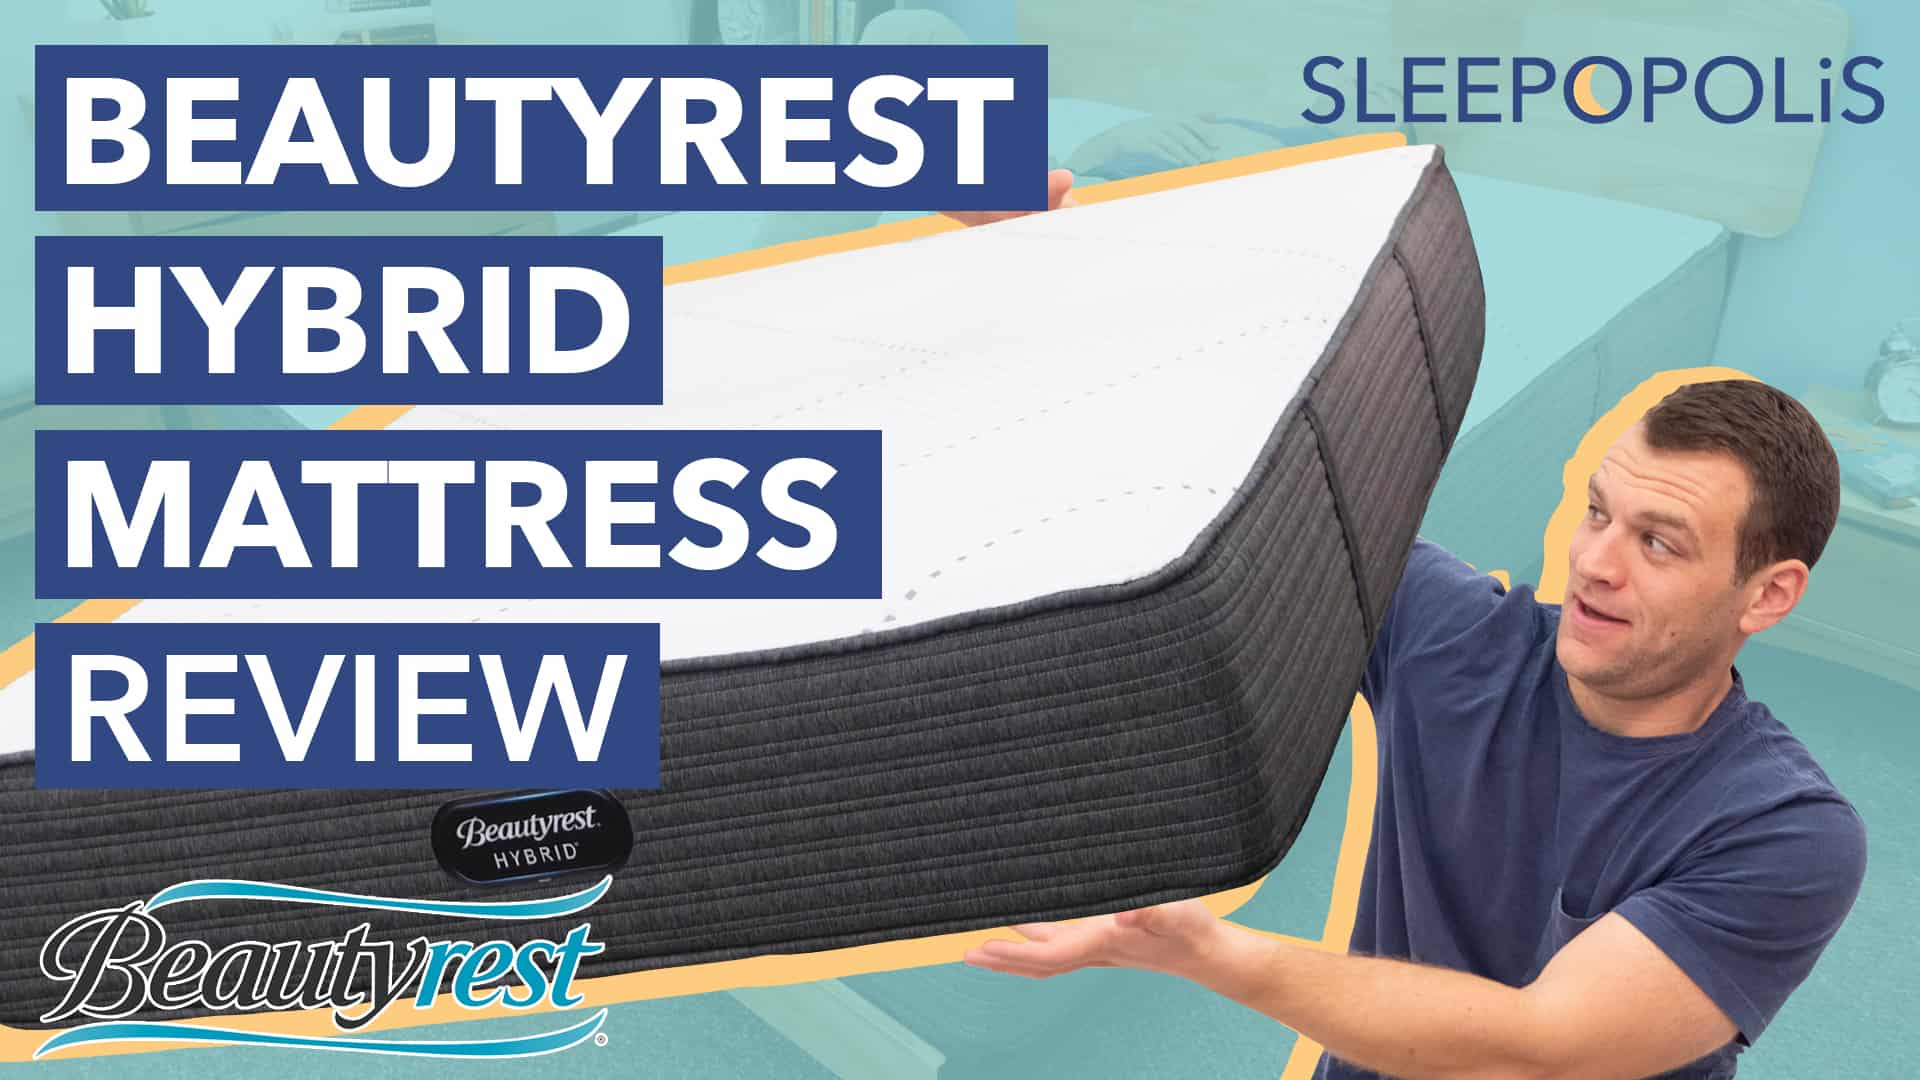 Beautyrest Hybrid Mattress Review Will Side Sleepers Like This Bed